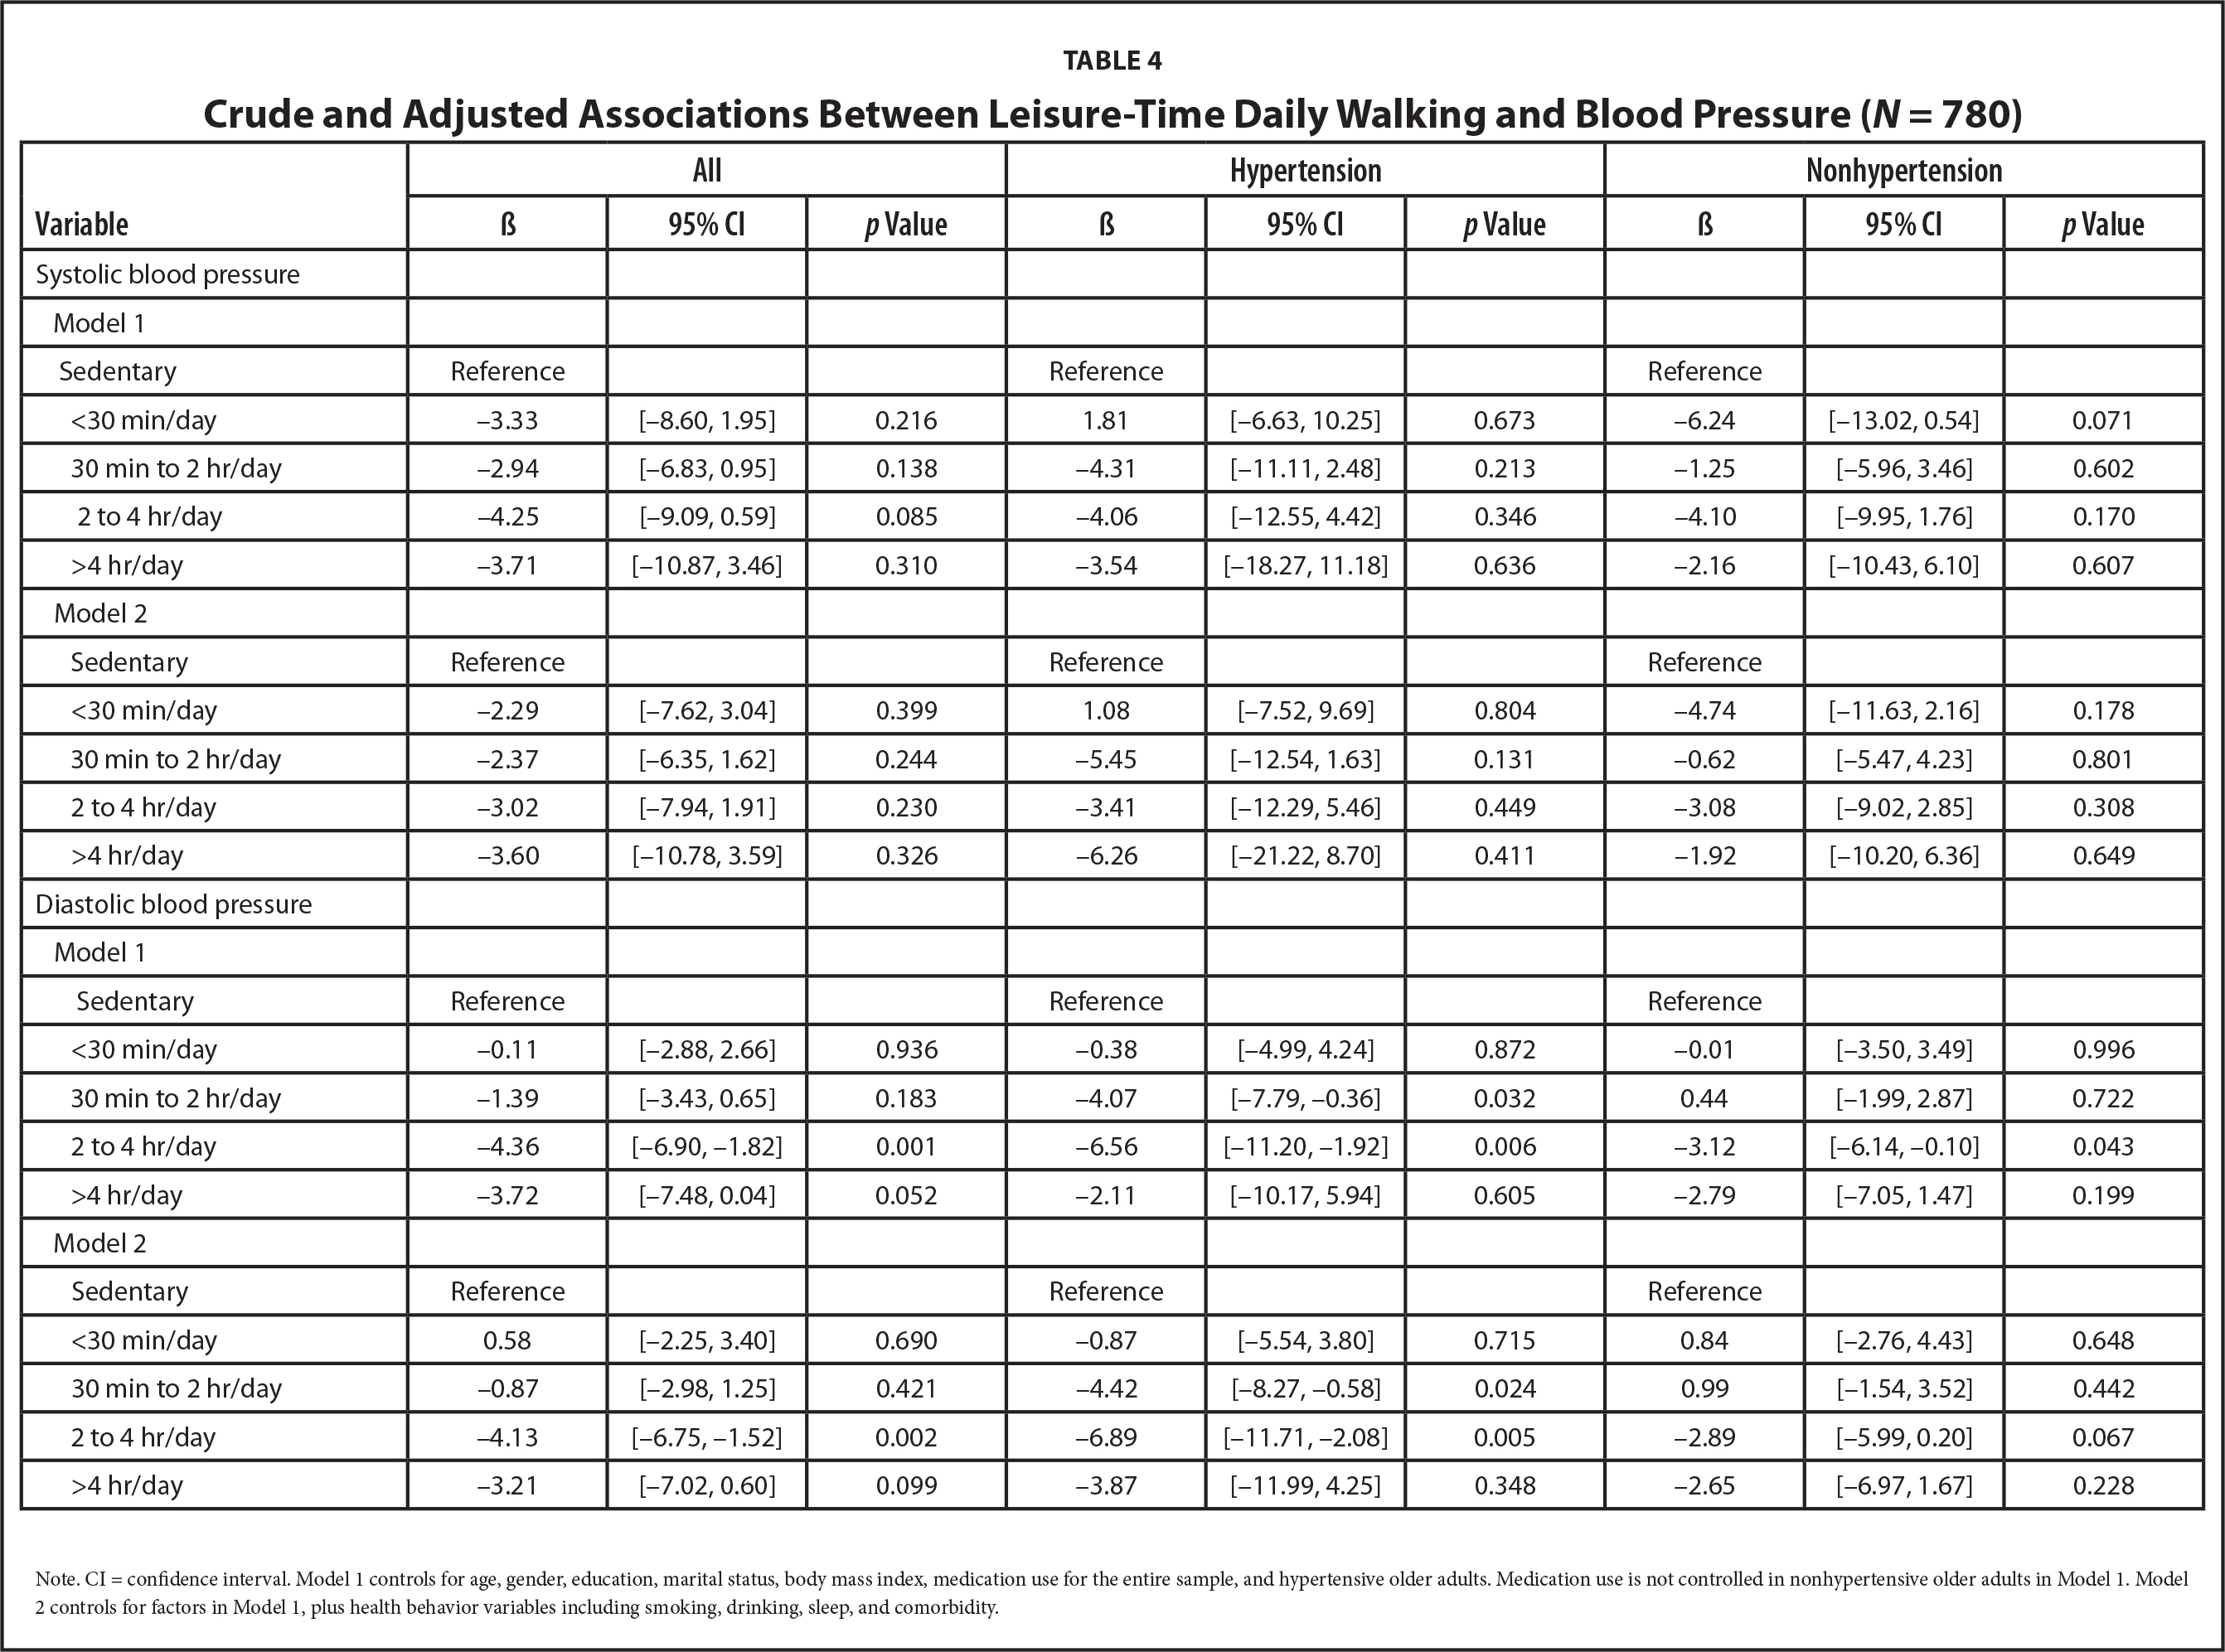 Crude and Adjusted Associations Between Leisure-Time Daily Walking and Blood Pressure (N= 780)